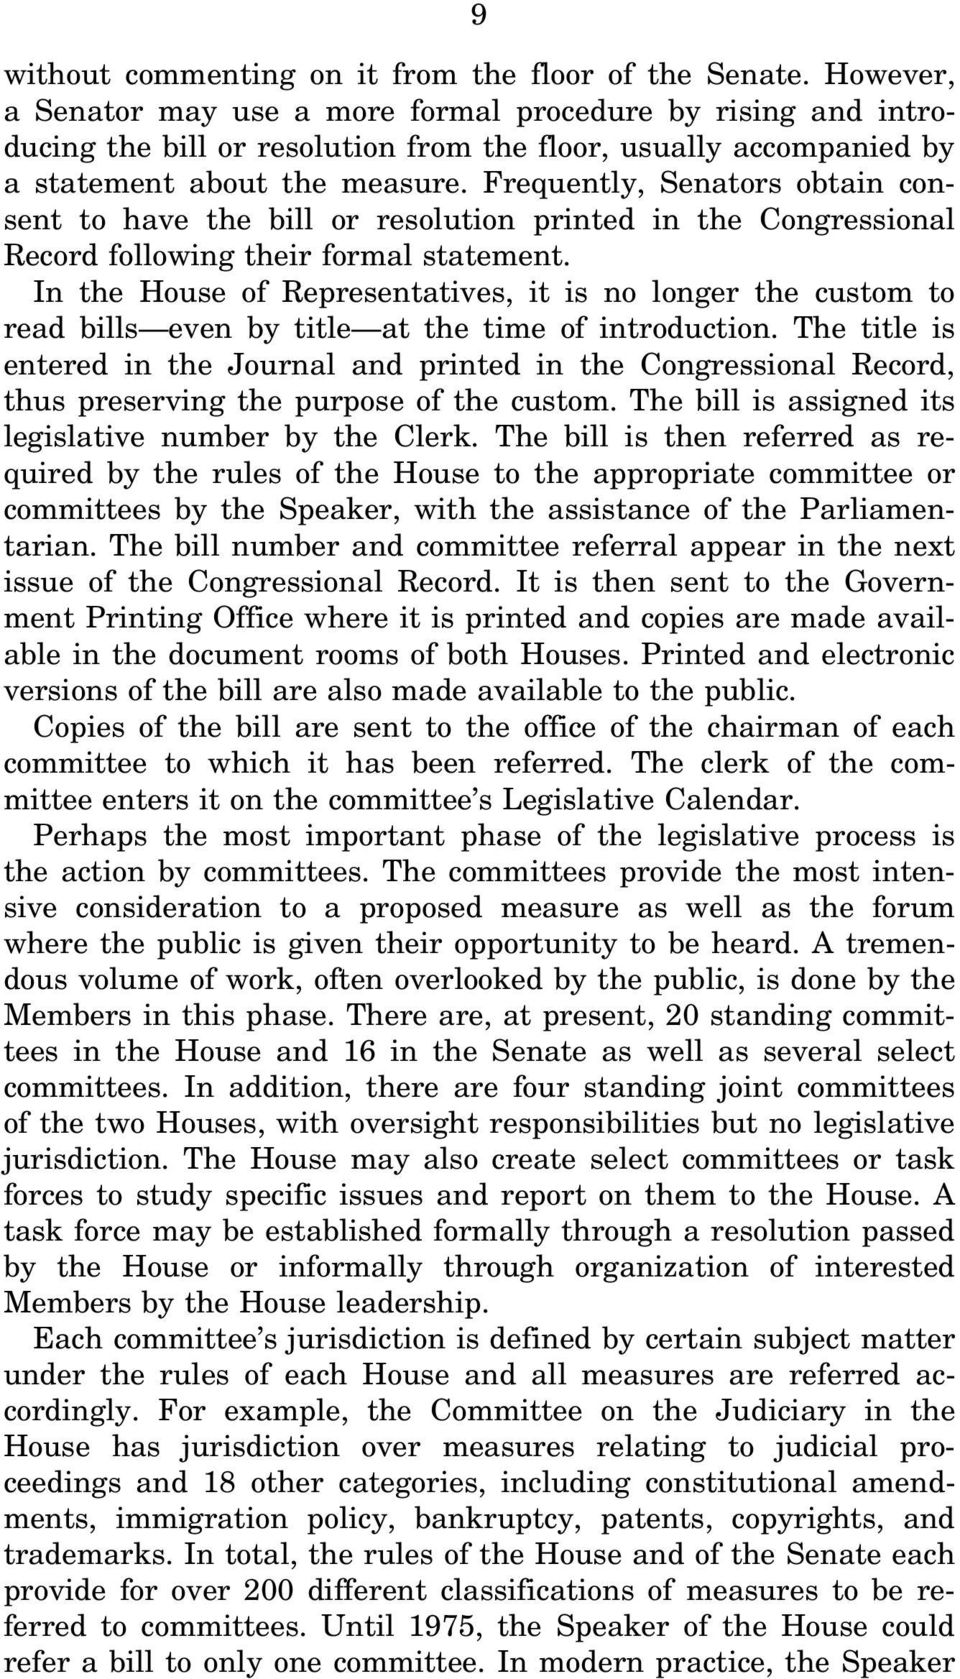 Frequently, Senators obtain consent to have the bill or resolution printed in the Congressional Record following their formal statement.